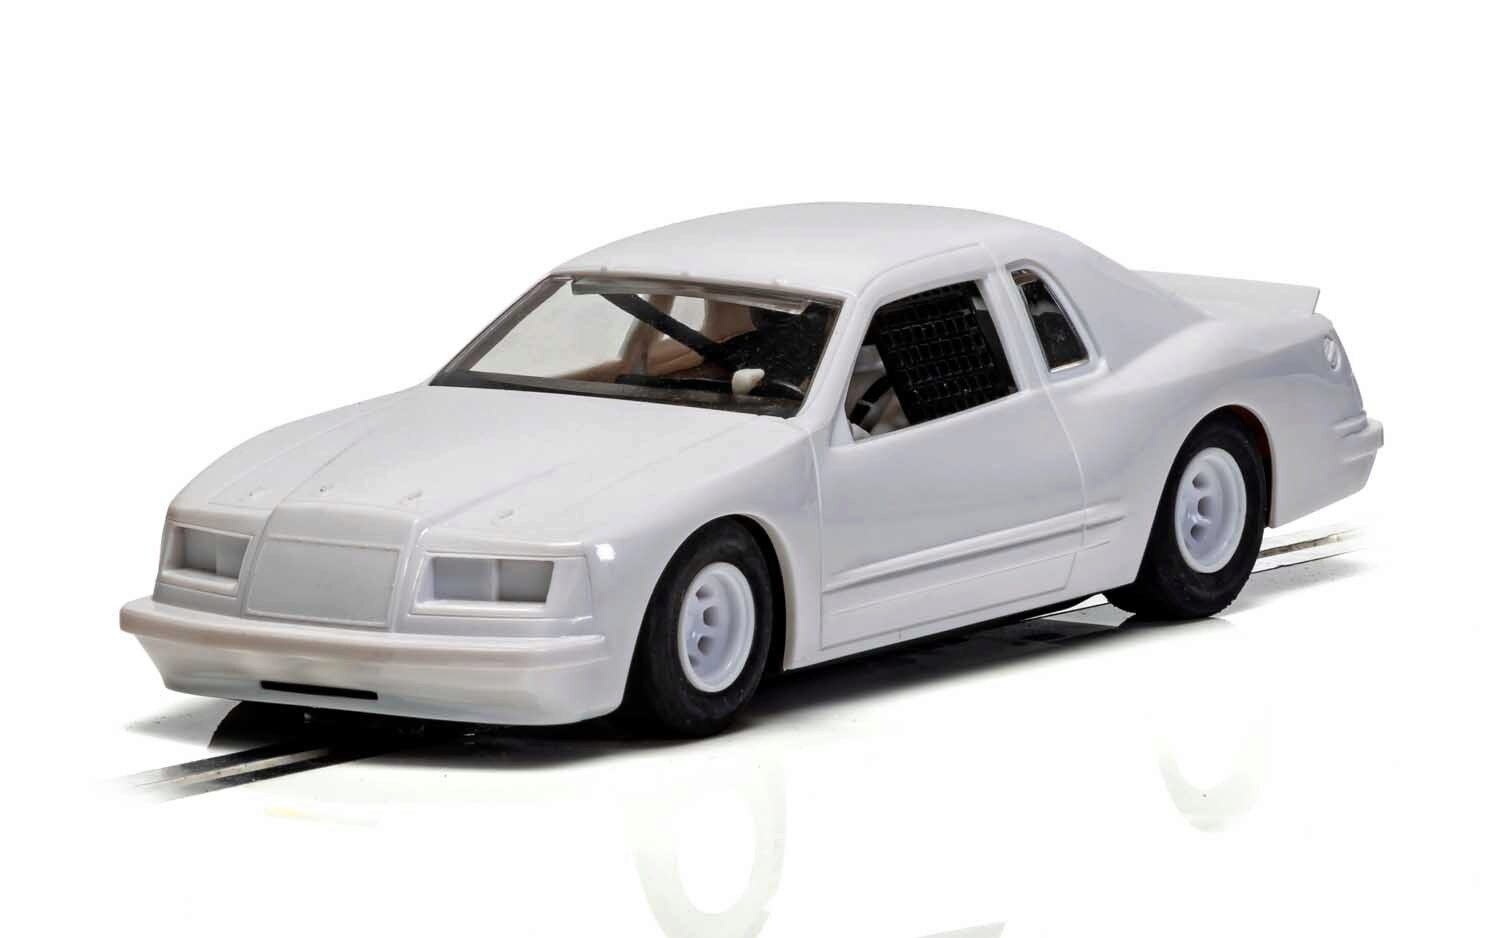 Scalextric C4077 Ford Thunderbird - White